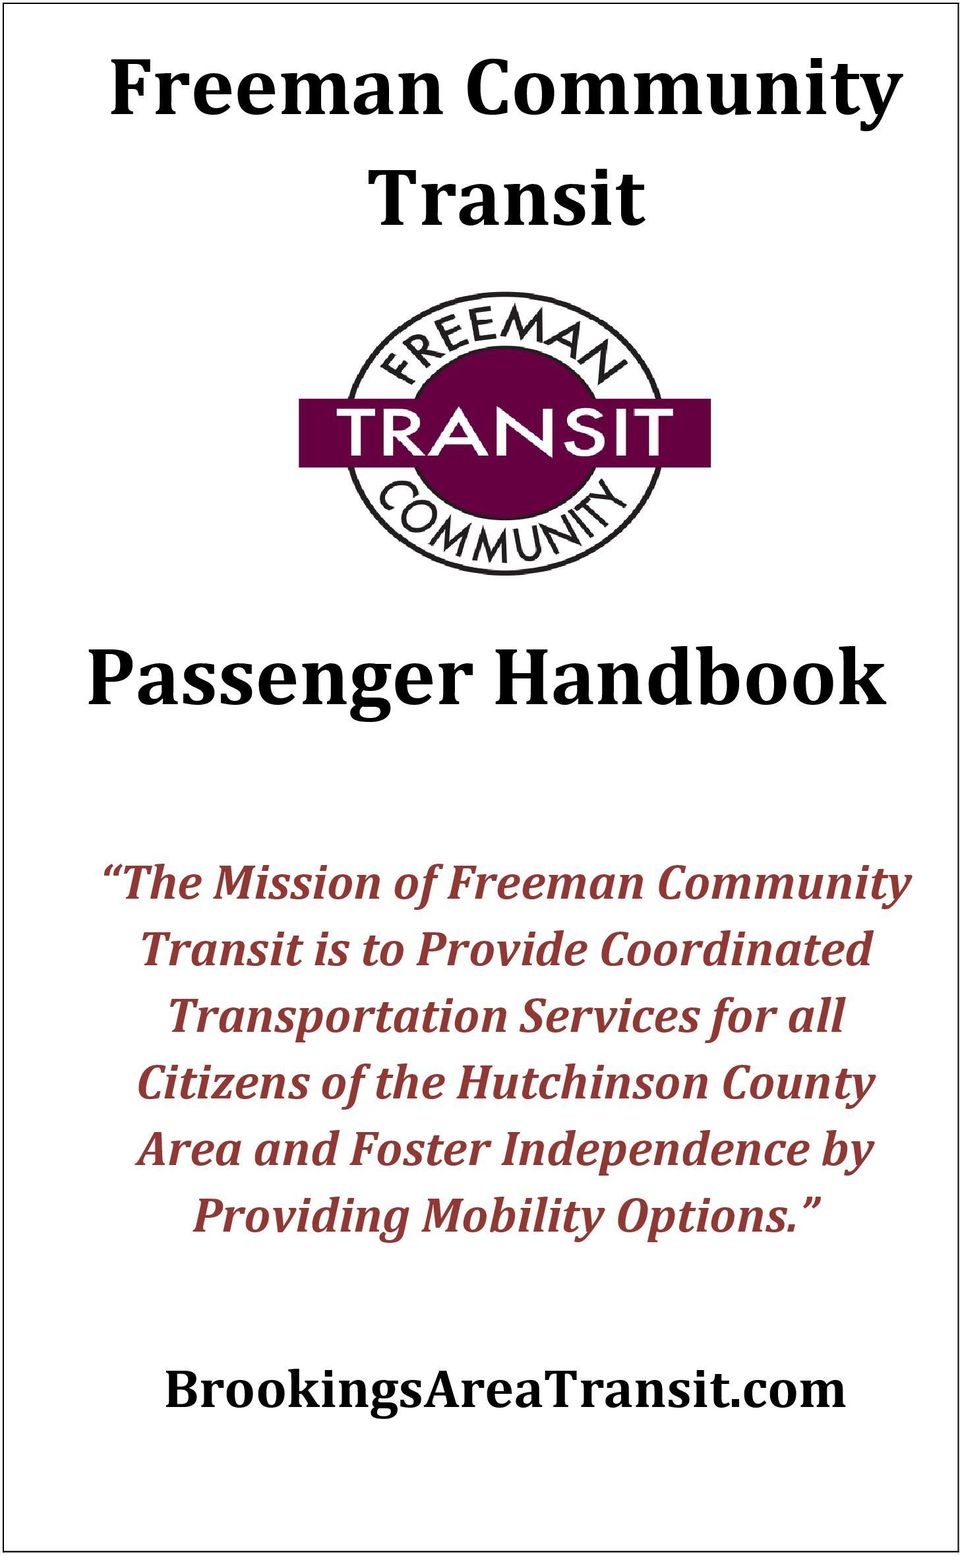 Transportation Services for all Citizens of the Hutchinson County